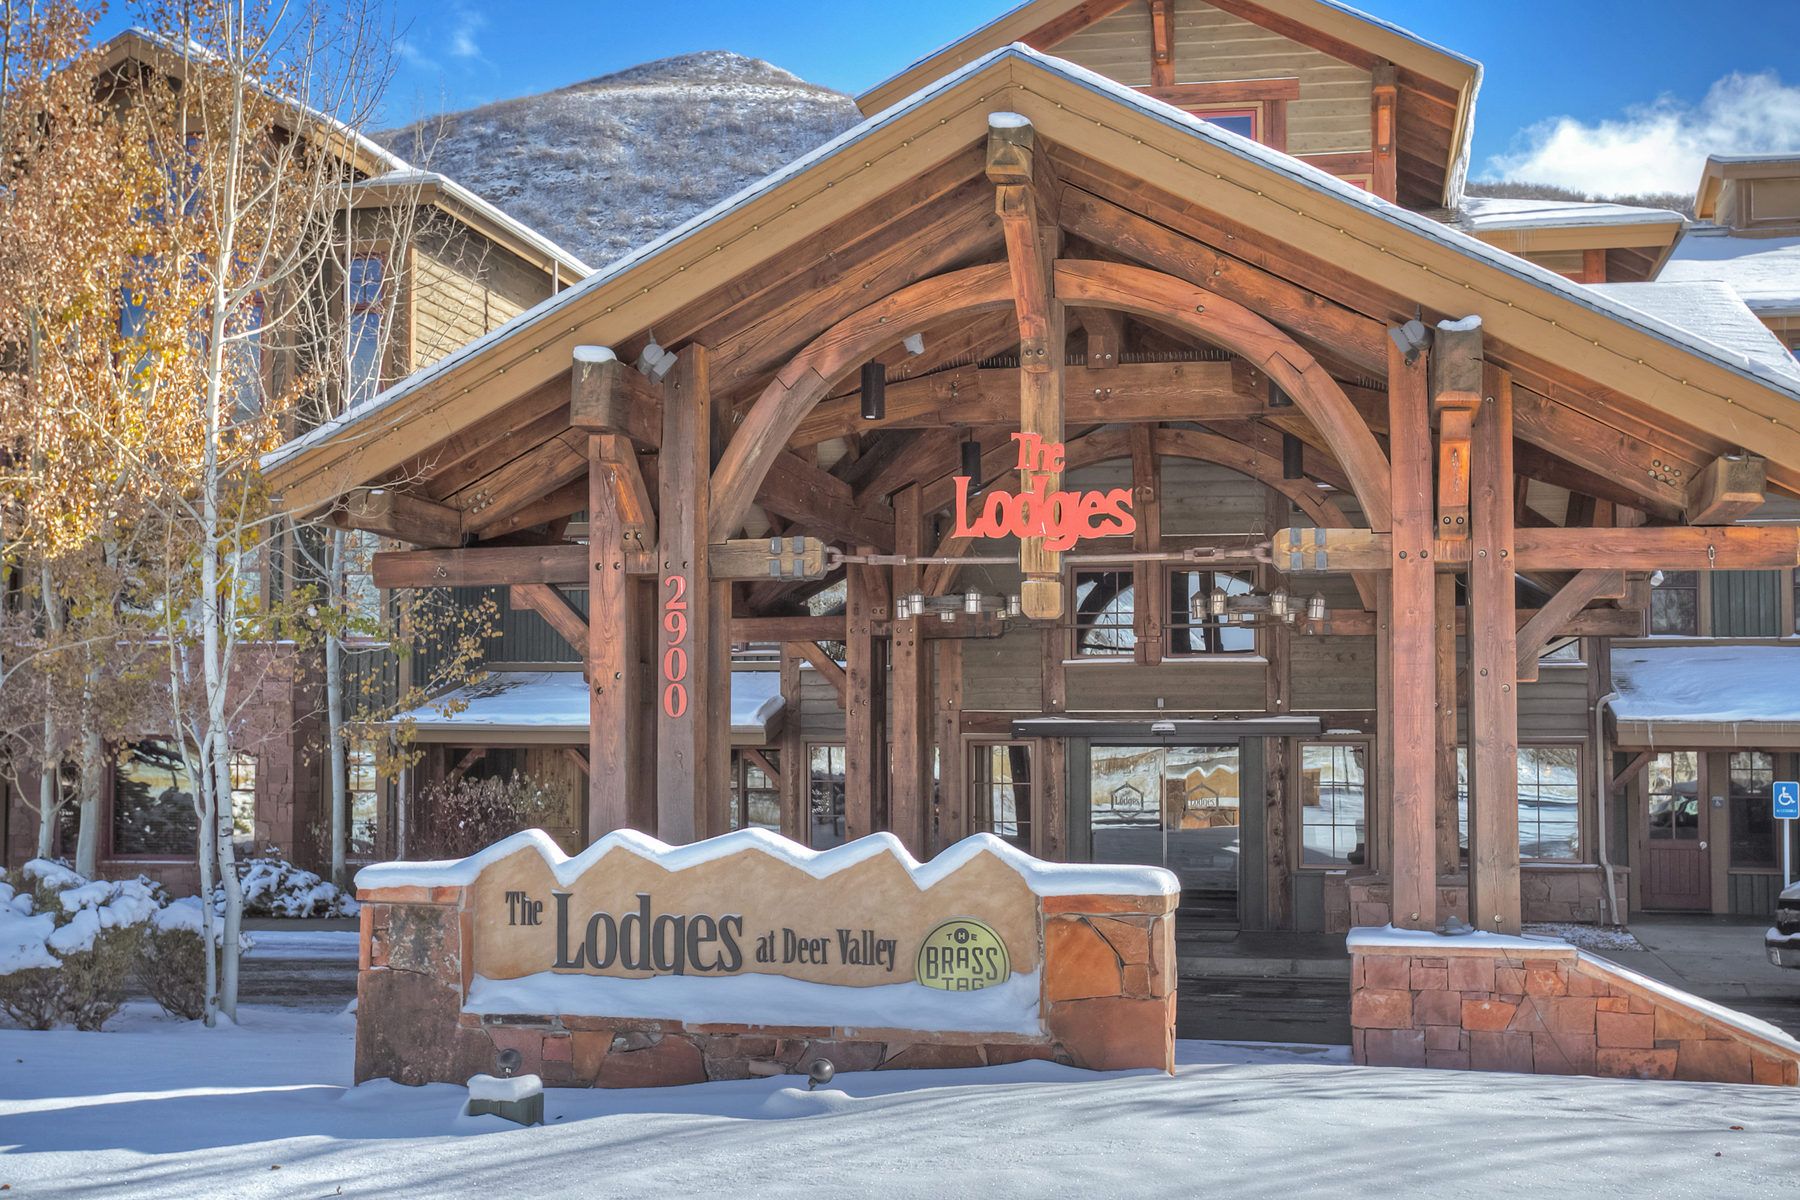 Property For Sale at Lodges at Deer Valley condo in prime location